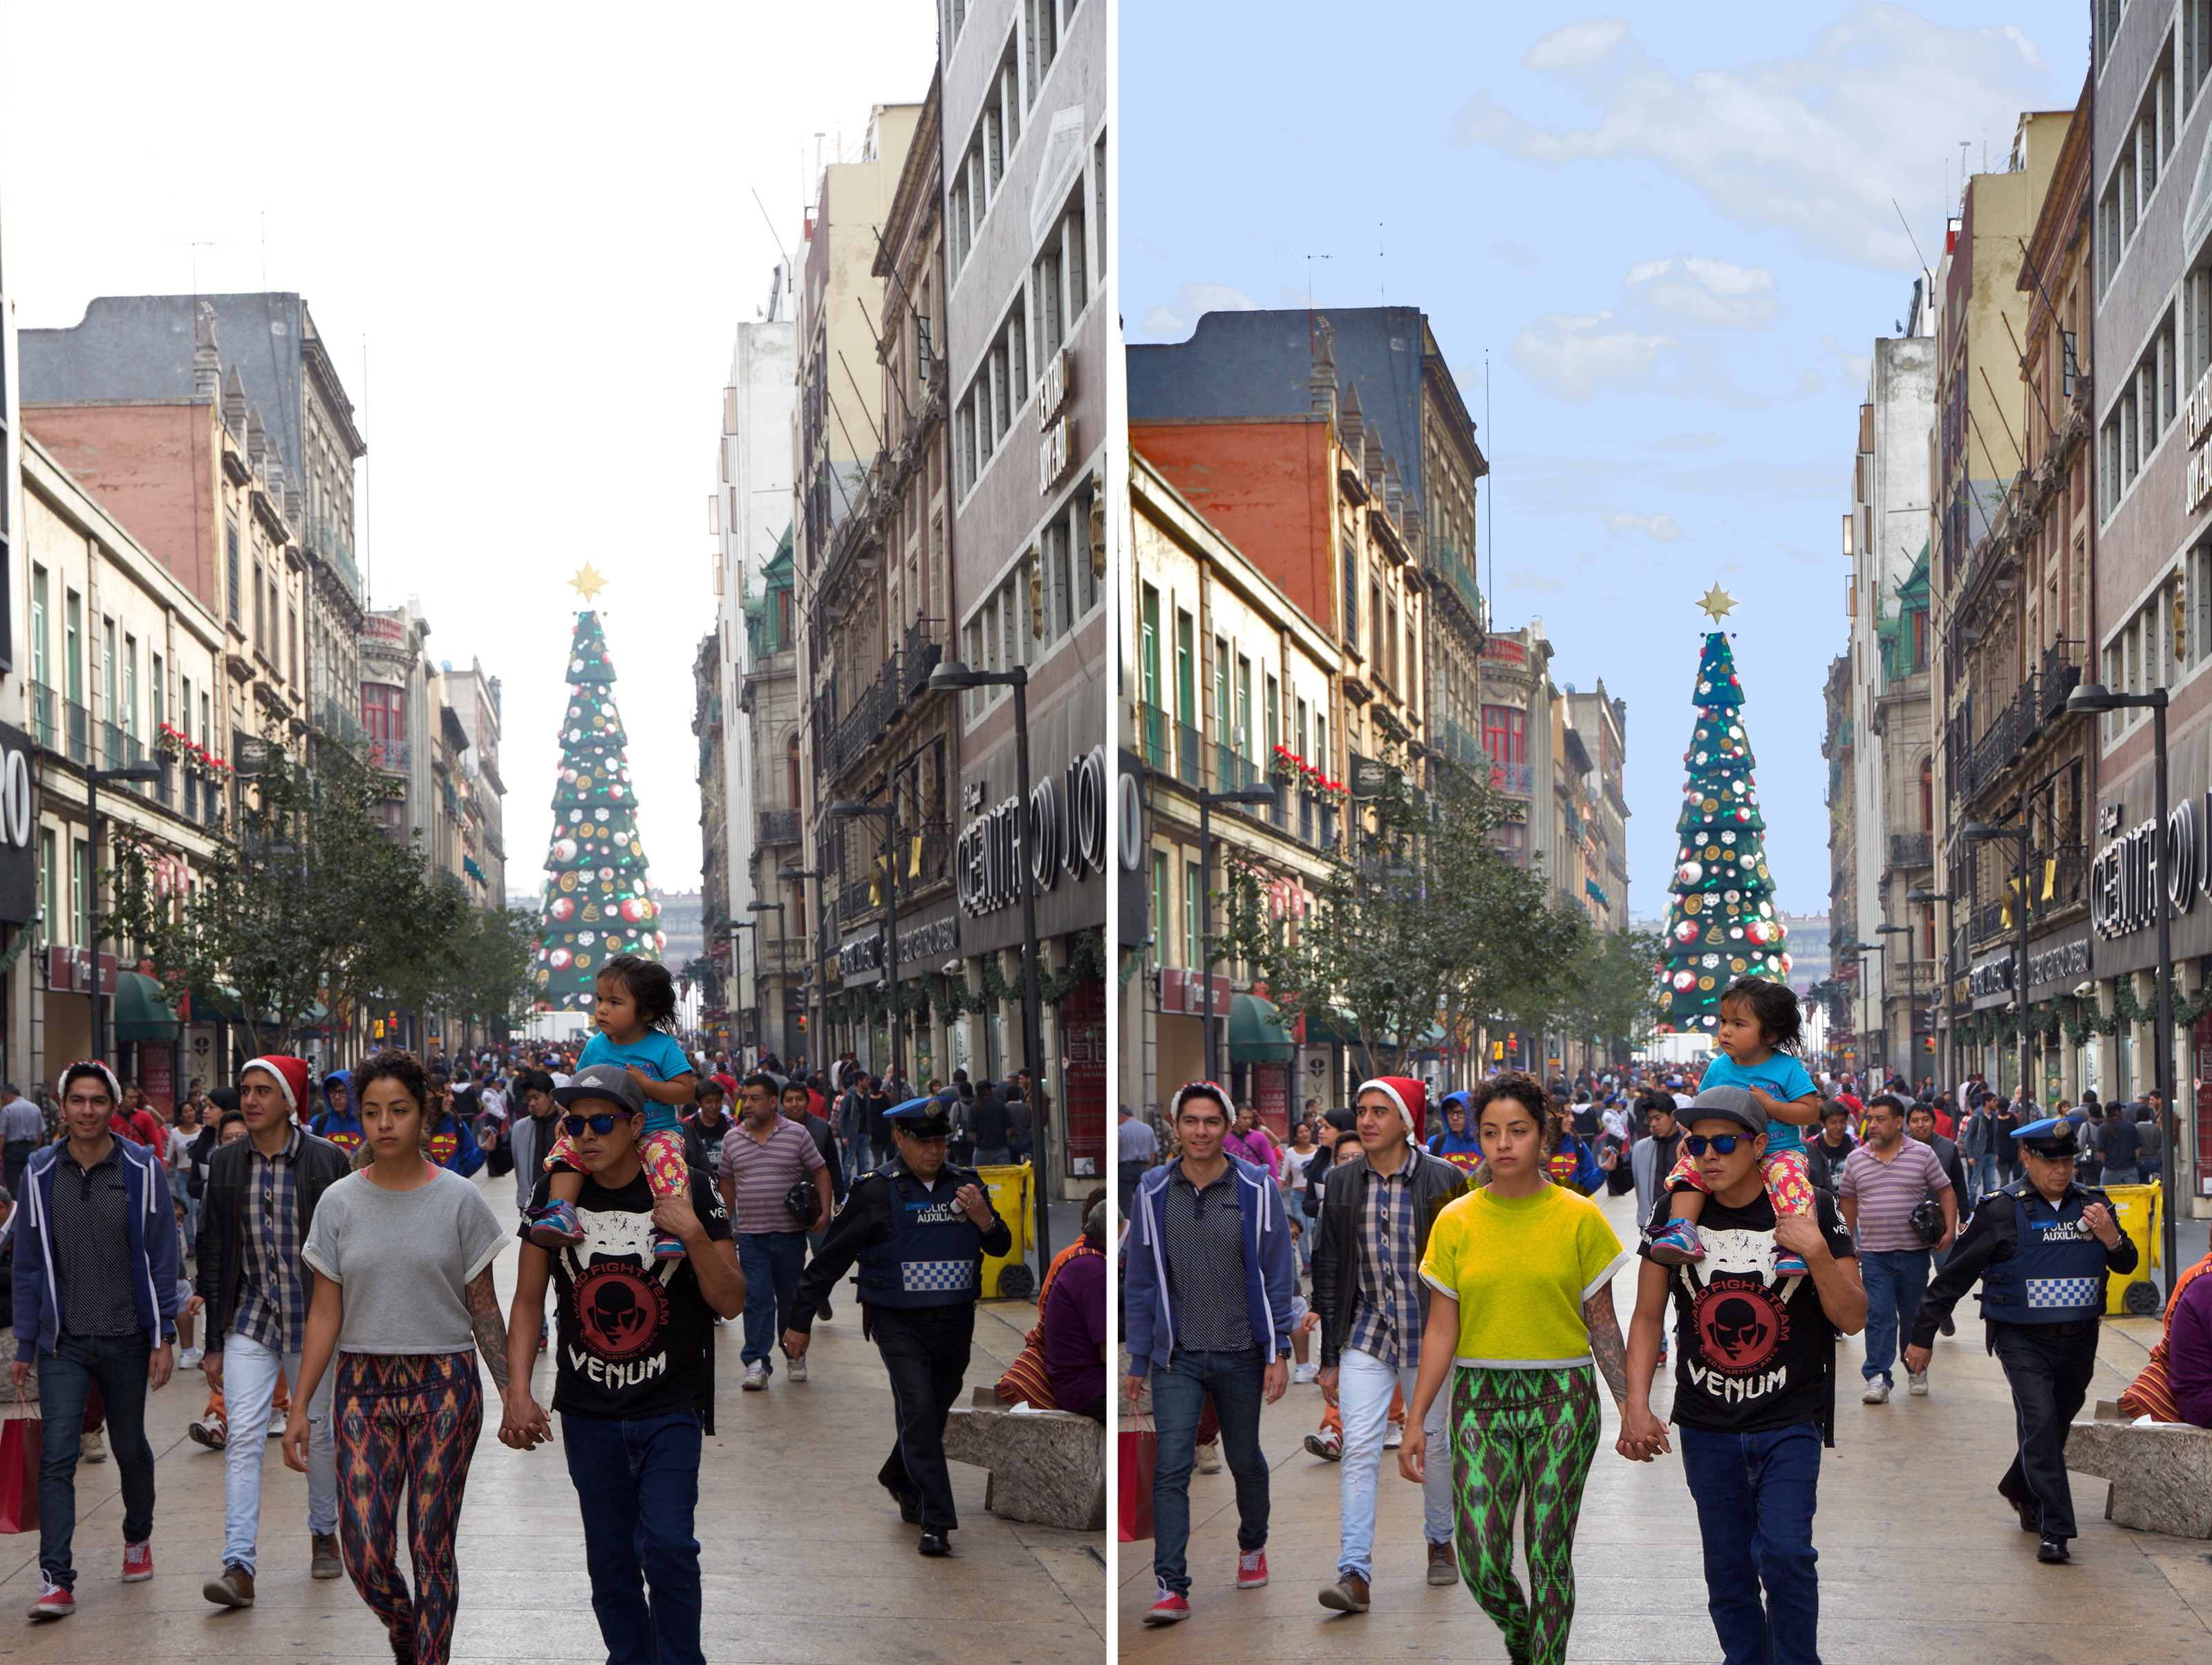 People walking down Mexico City Street